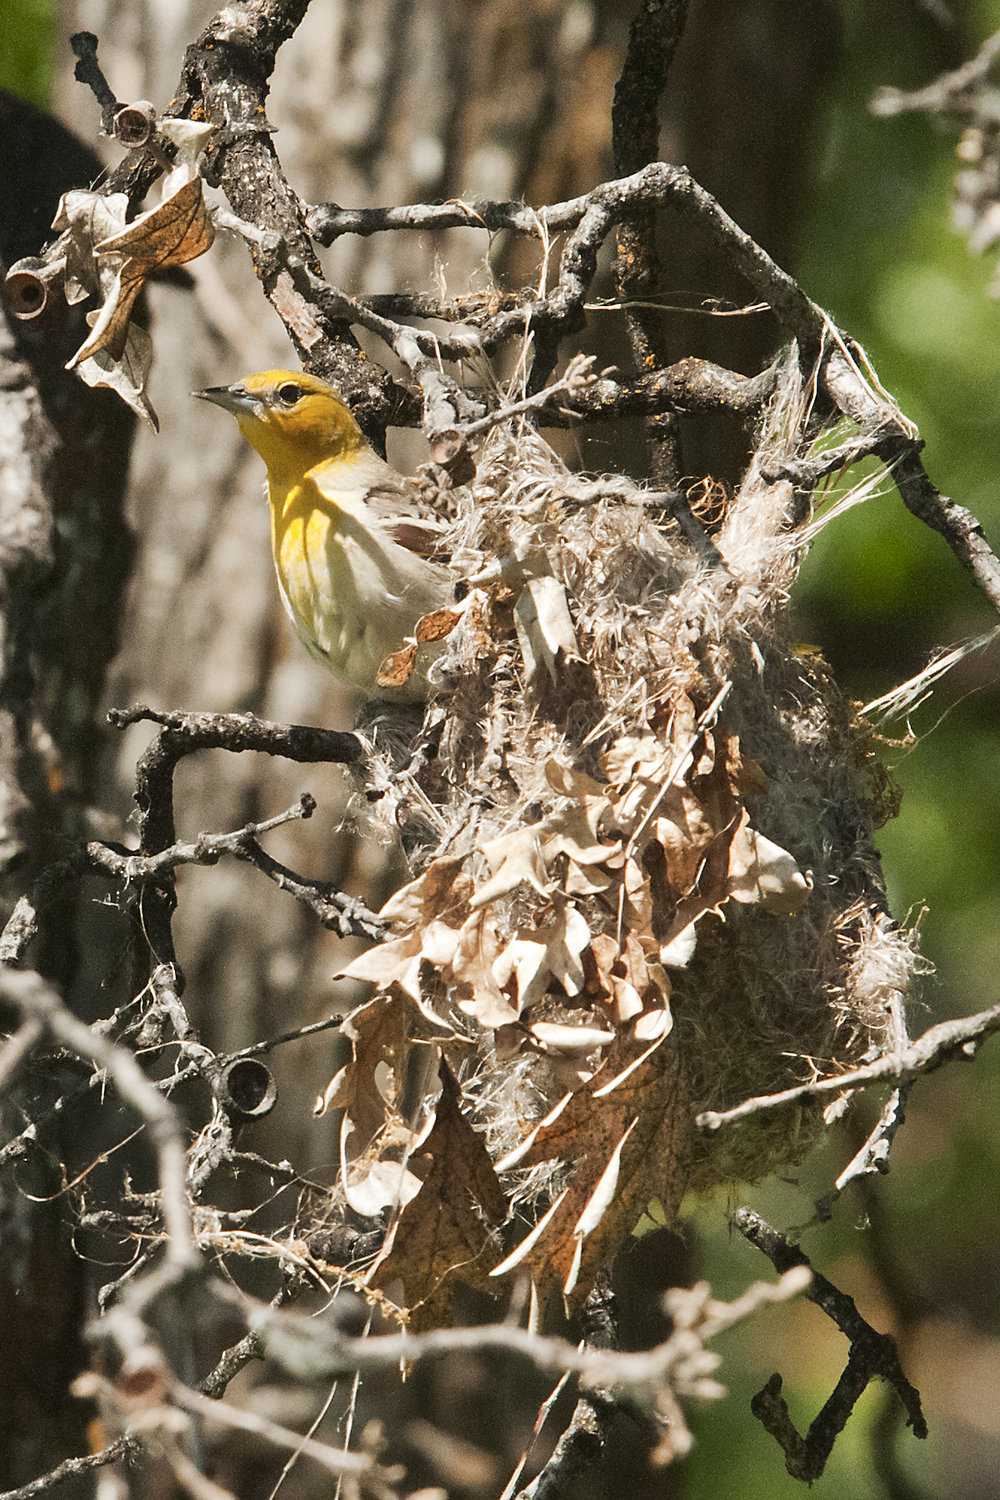 Female Bullock's Oriole in Nest